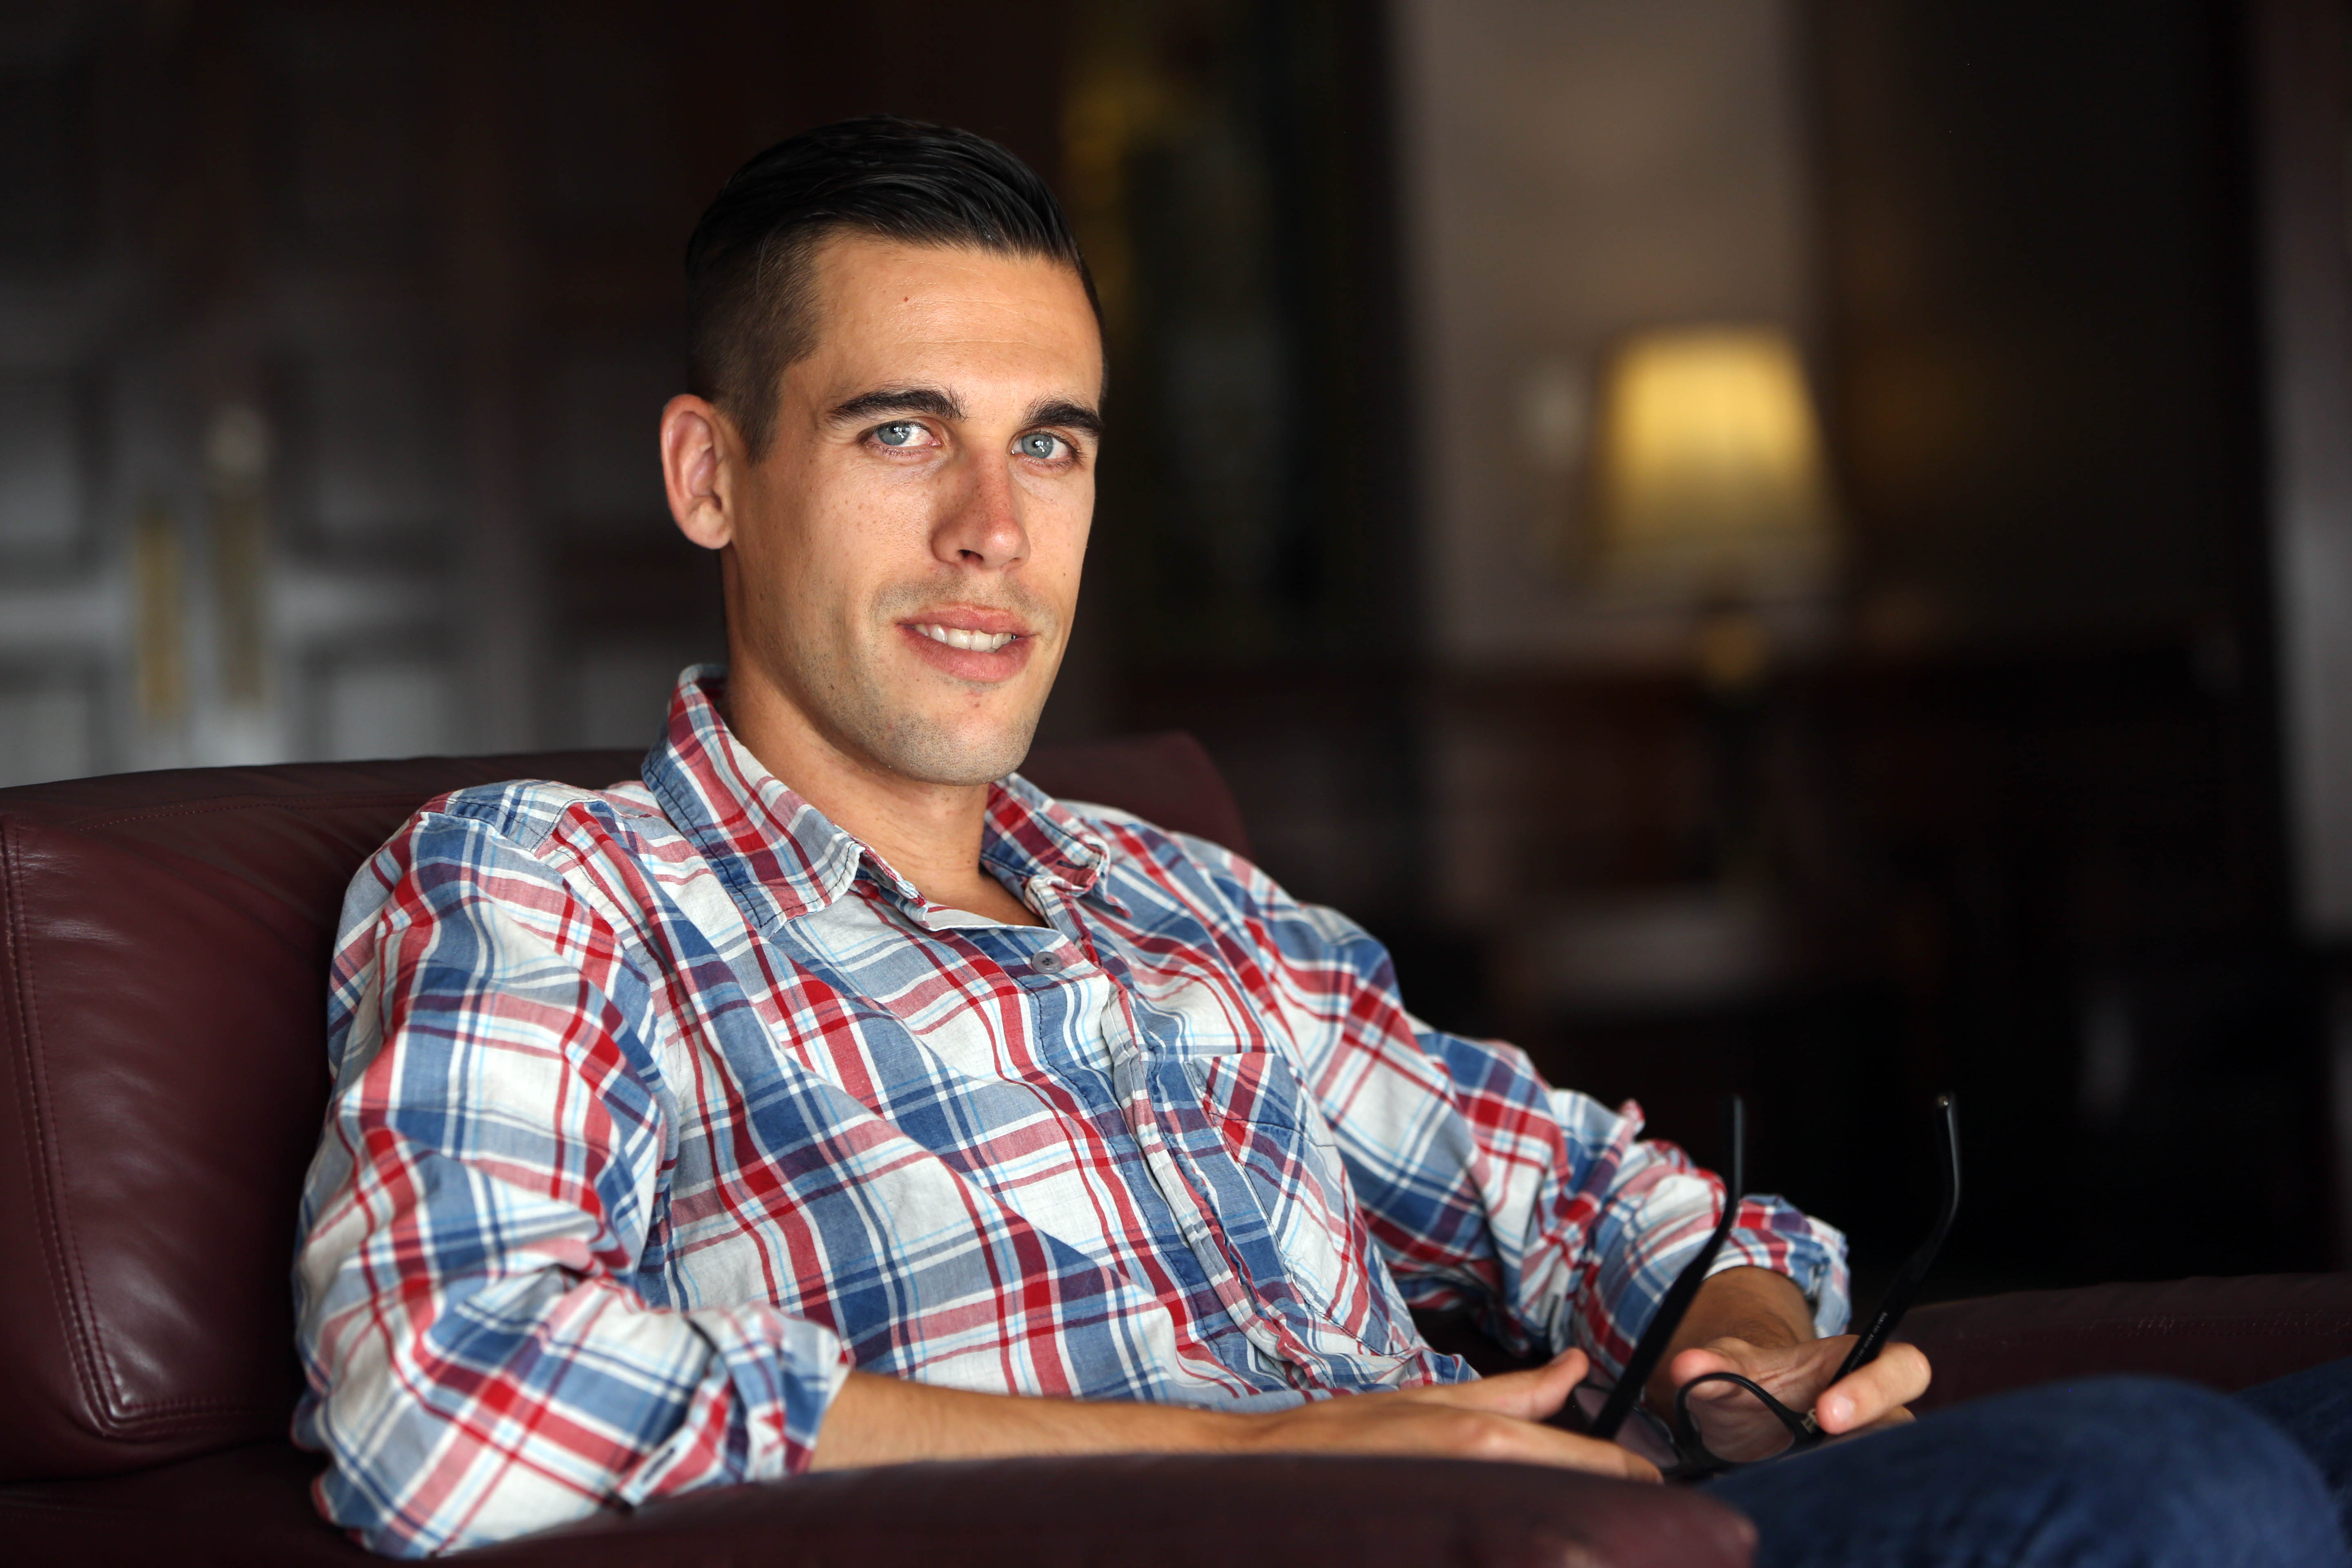 Author: Ryan Holiday: How To Make Stuff That Stands The Test Of